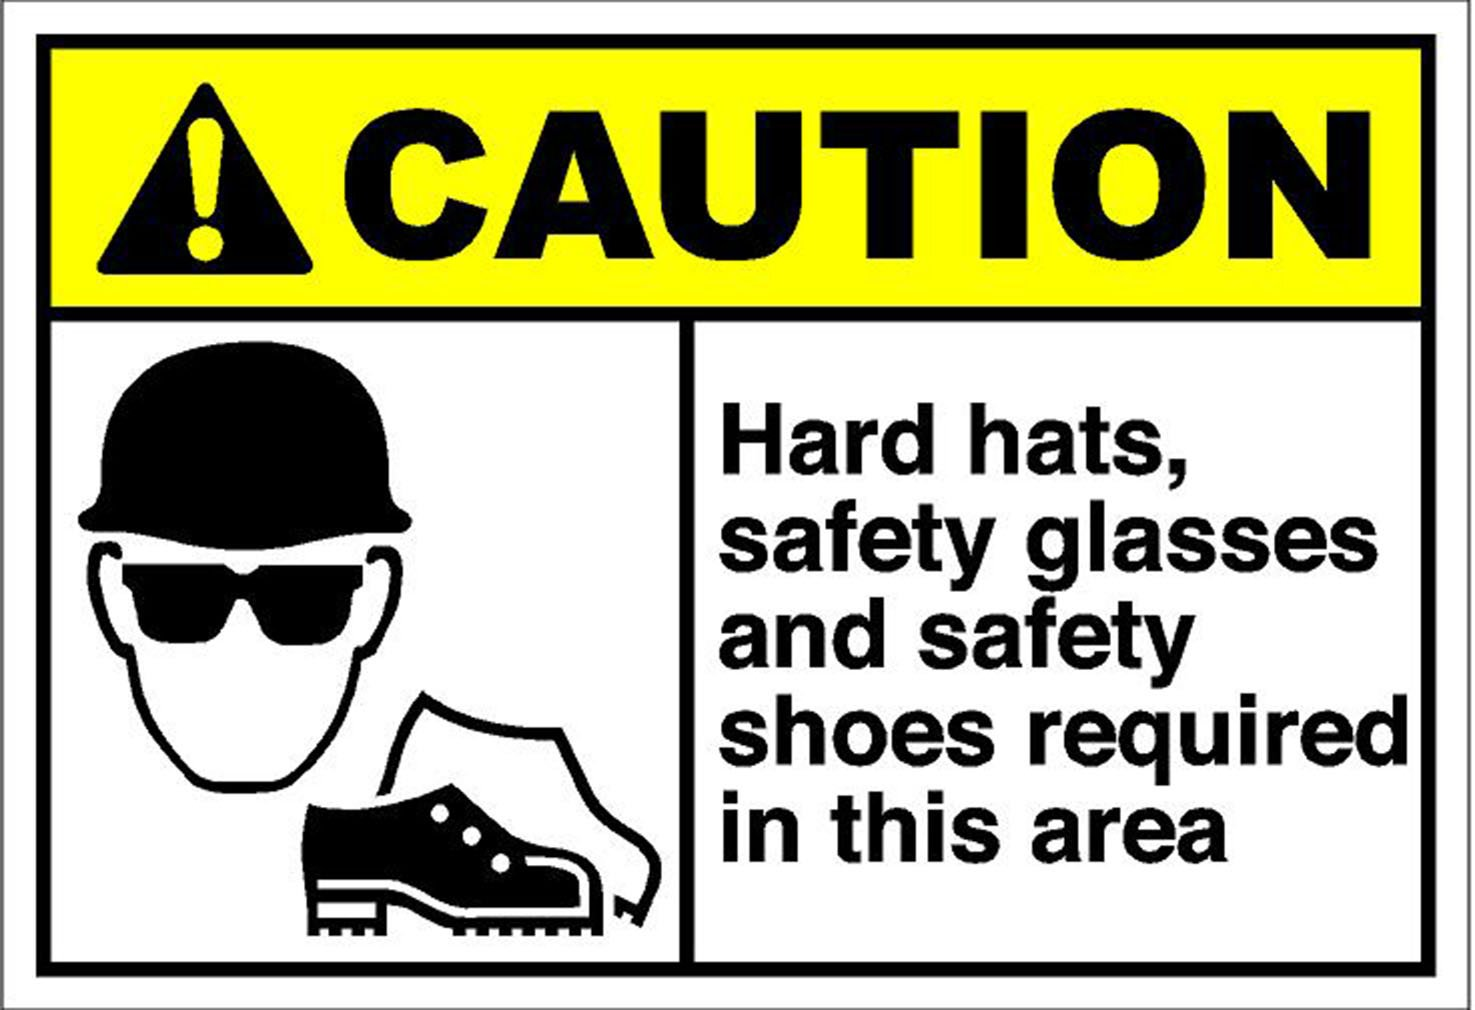 Hard Hats, Safety Glasses And Safety Shoes Required Caution OSHA METAL Sign 24 in x 18 in